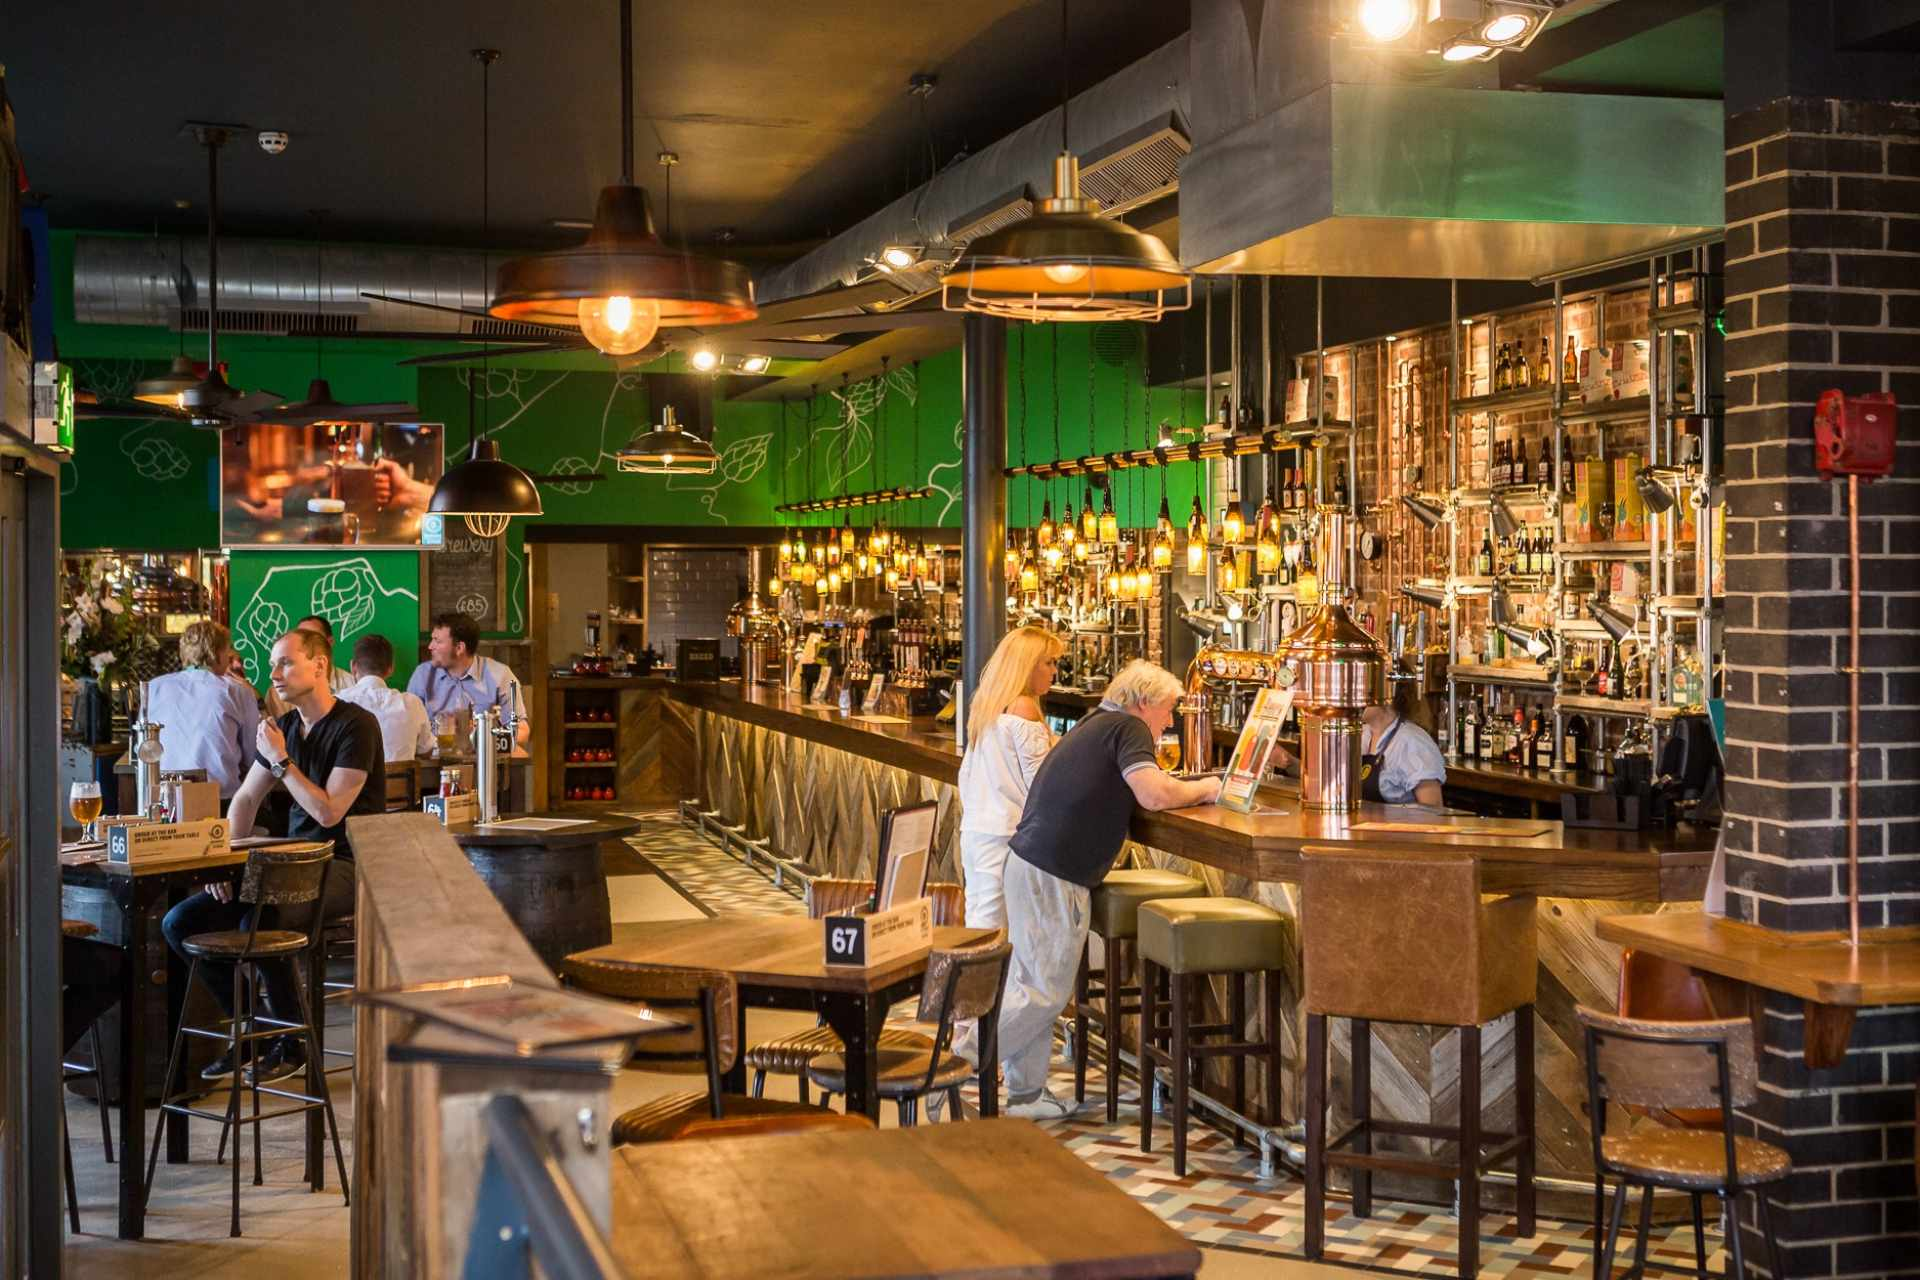 brewhouse-and-kitchen-industrial-bar-and-restaurant-bottomless-brunch-nottingham